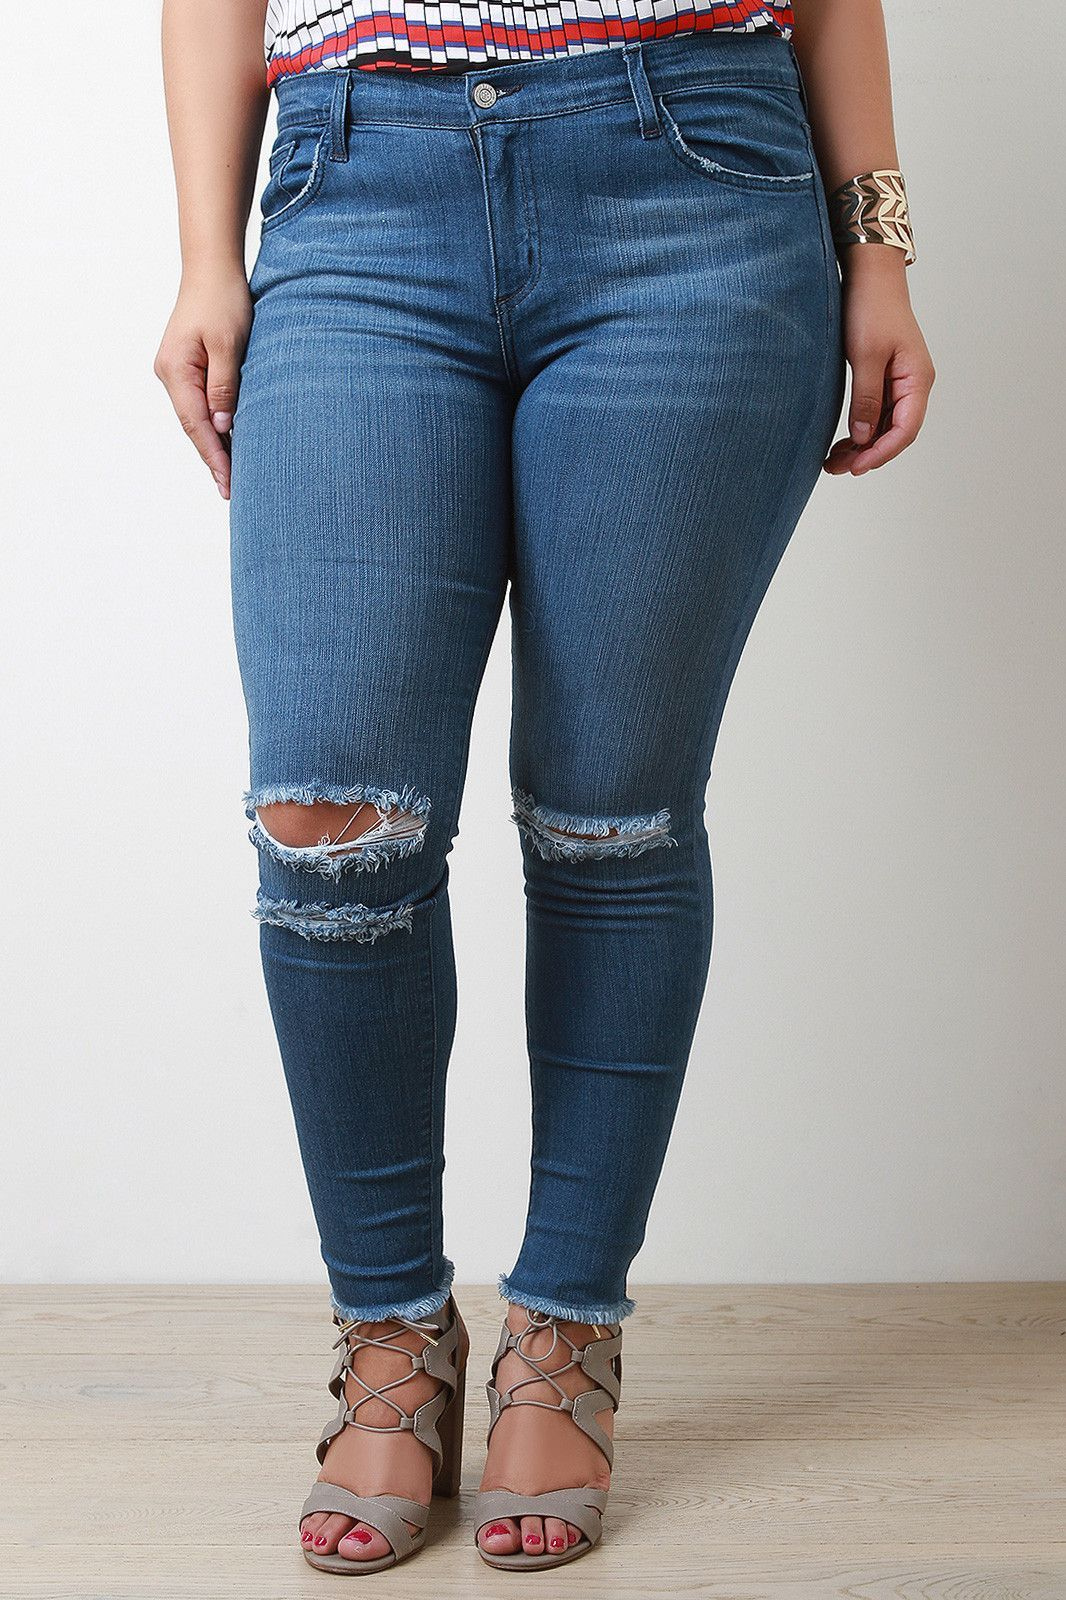 77324d000ef90 These trendy plus size jeans features a mid rise skinny jean fit